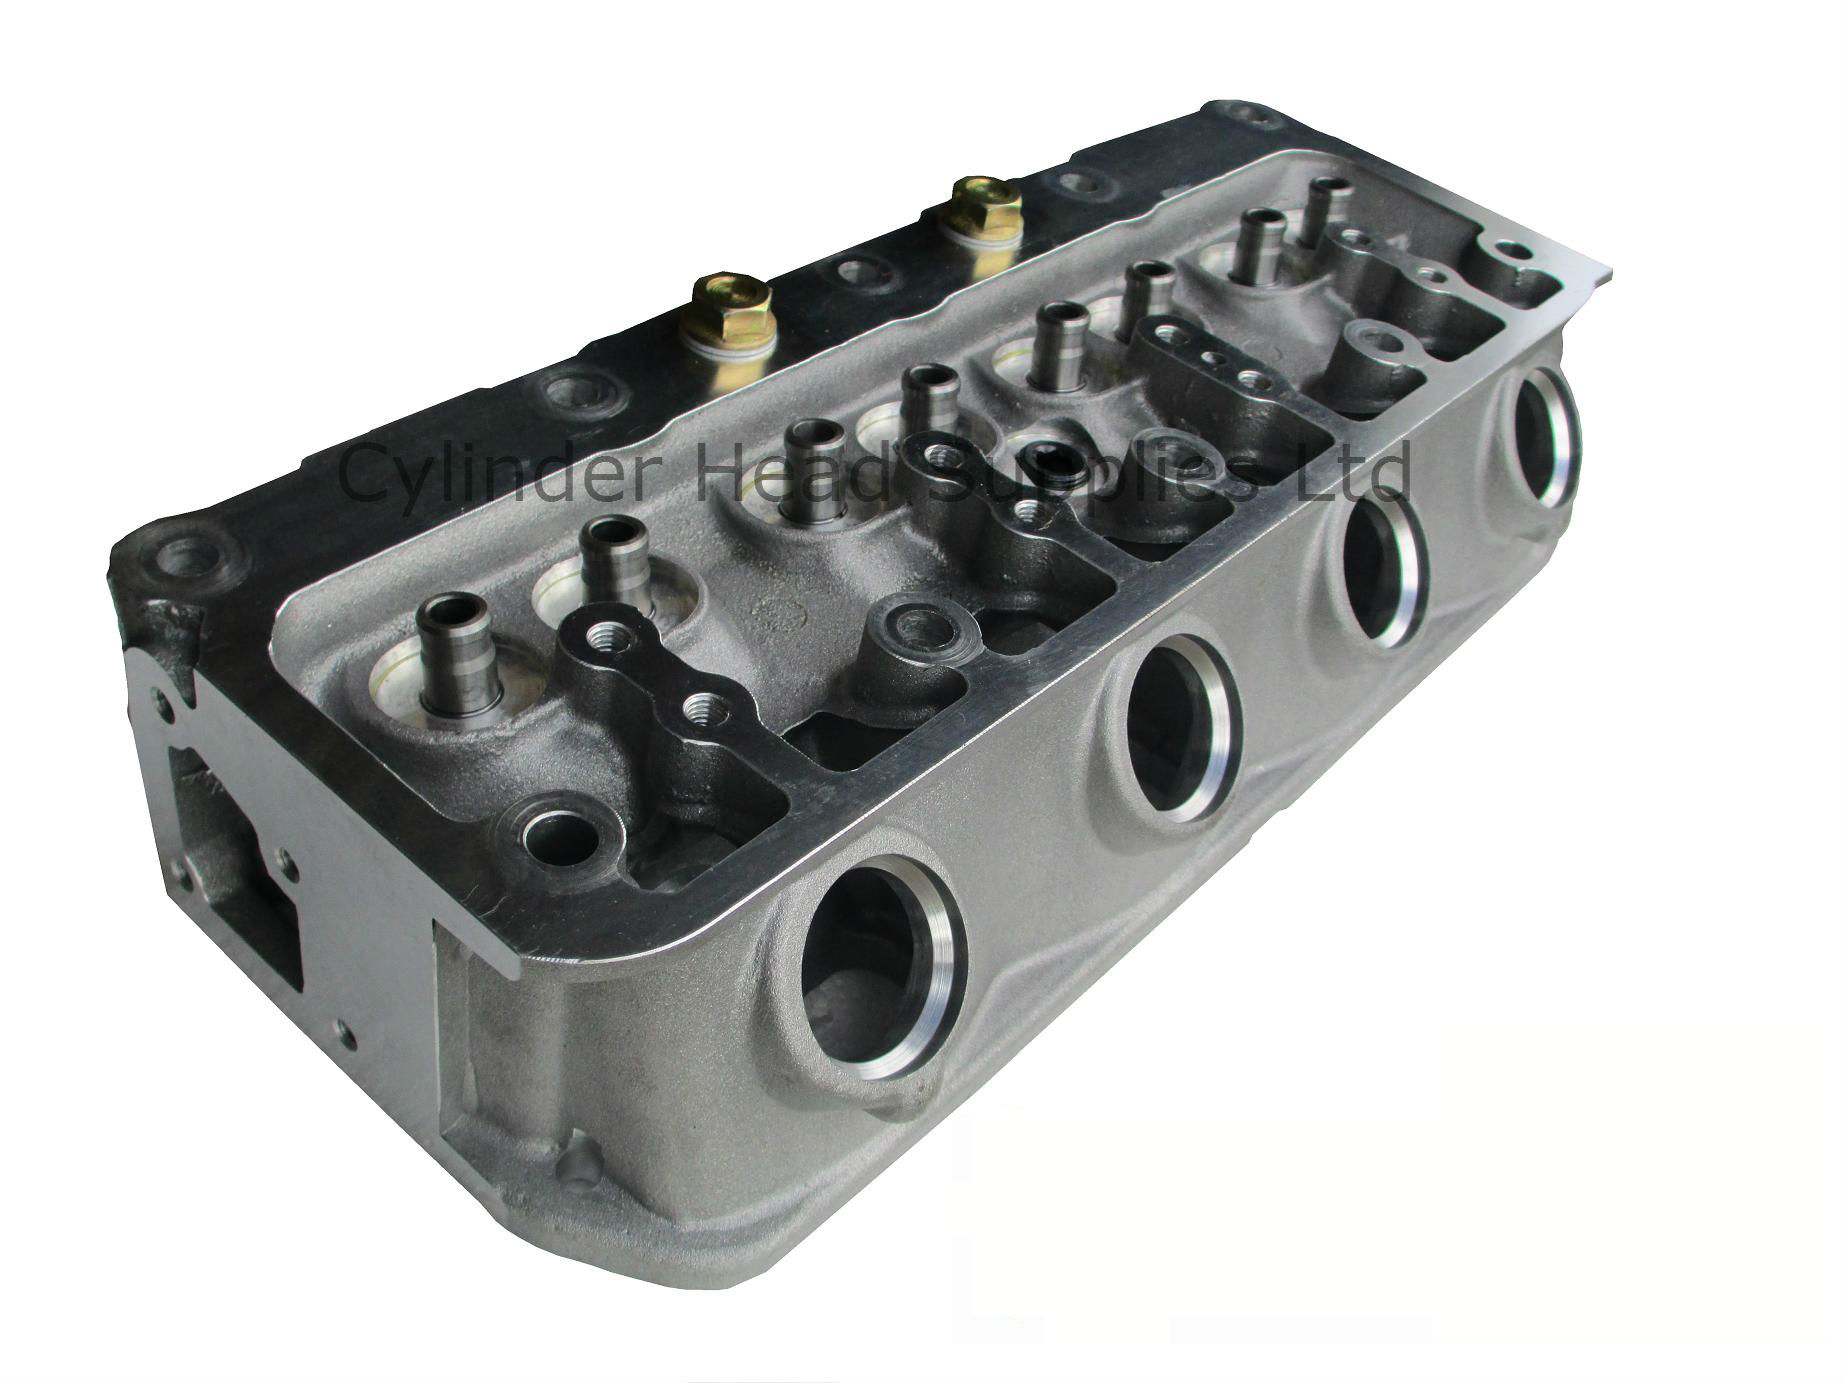 Toyota 5K Cylinder Head (Bare)